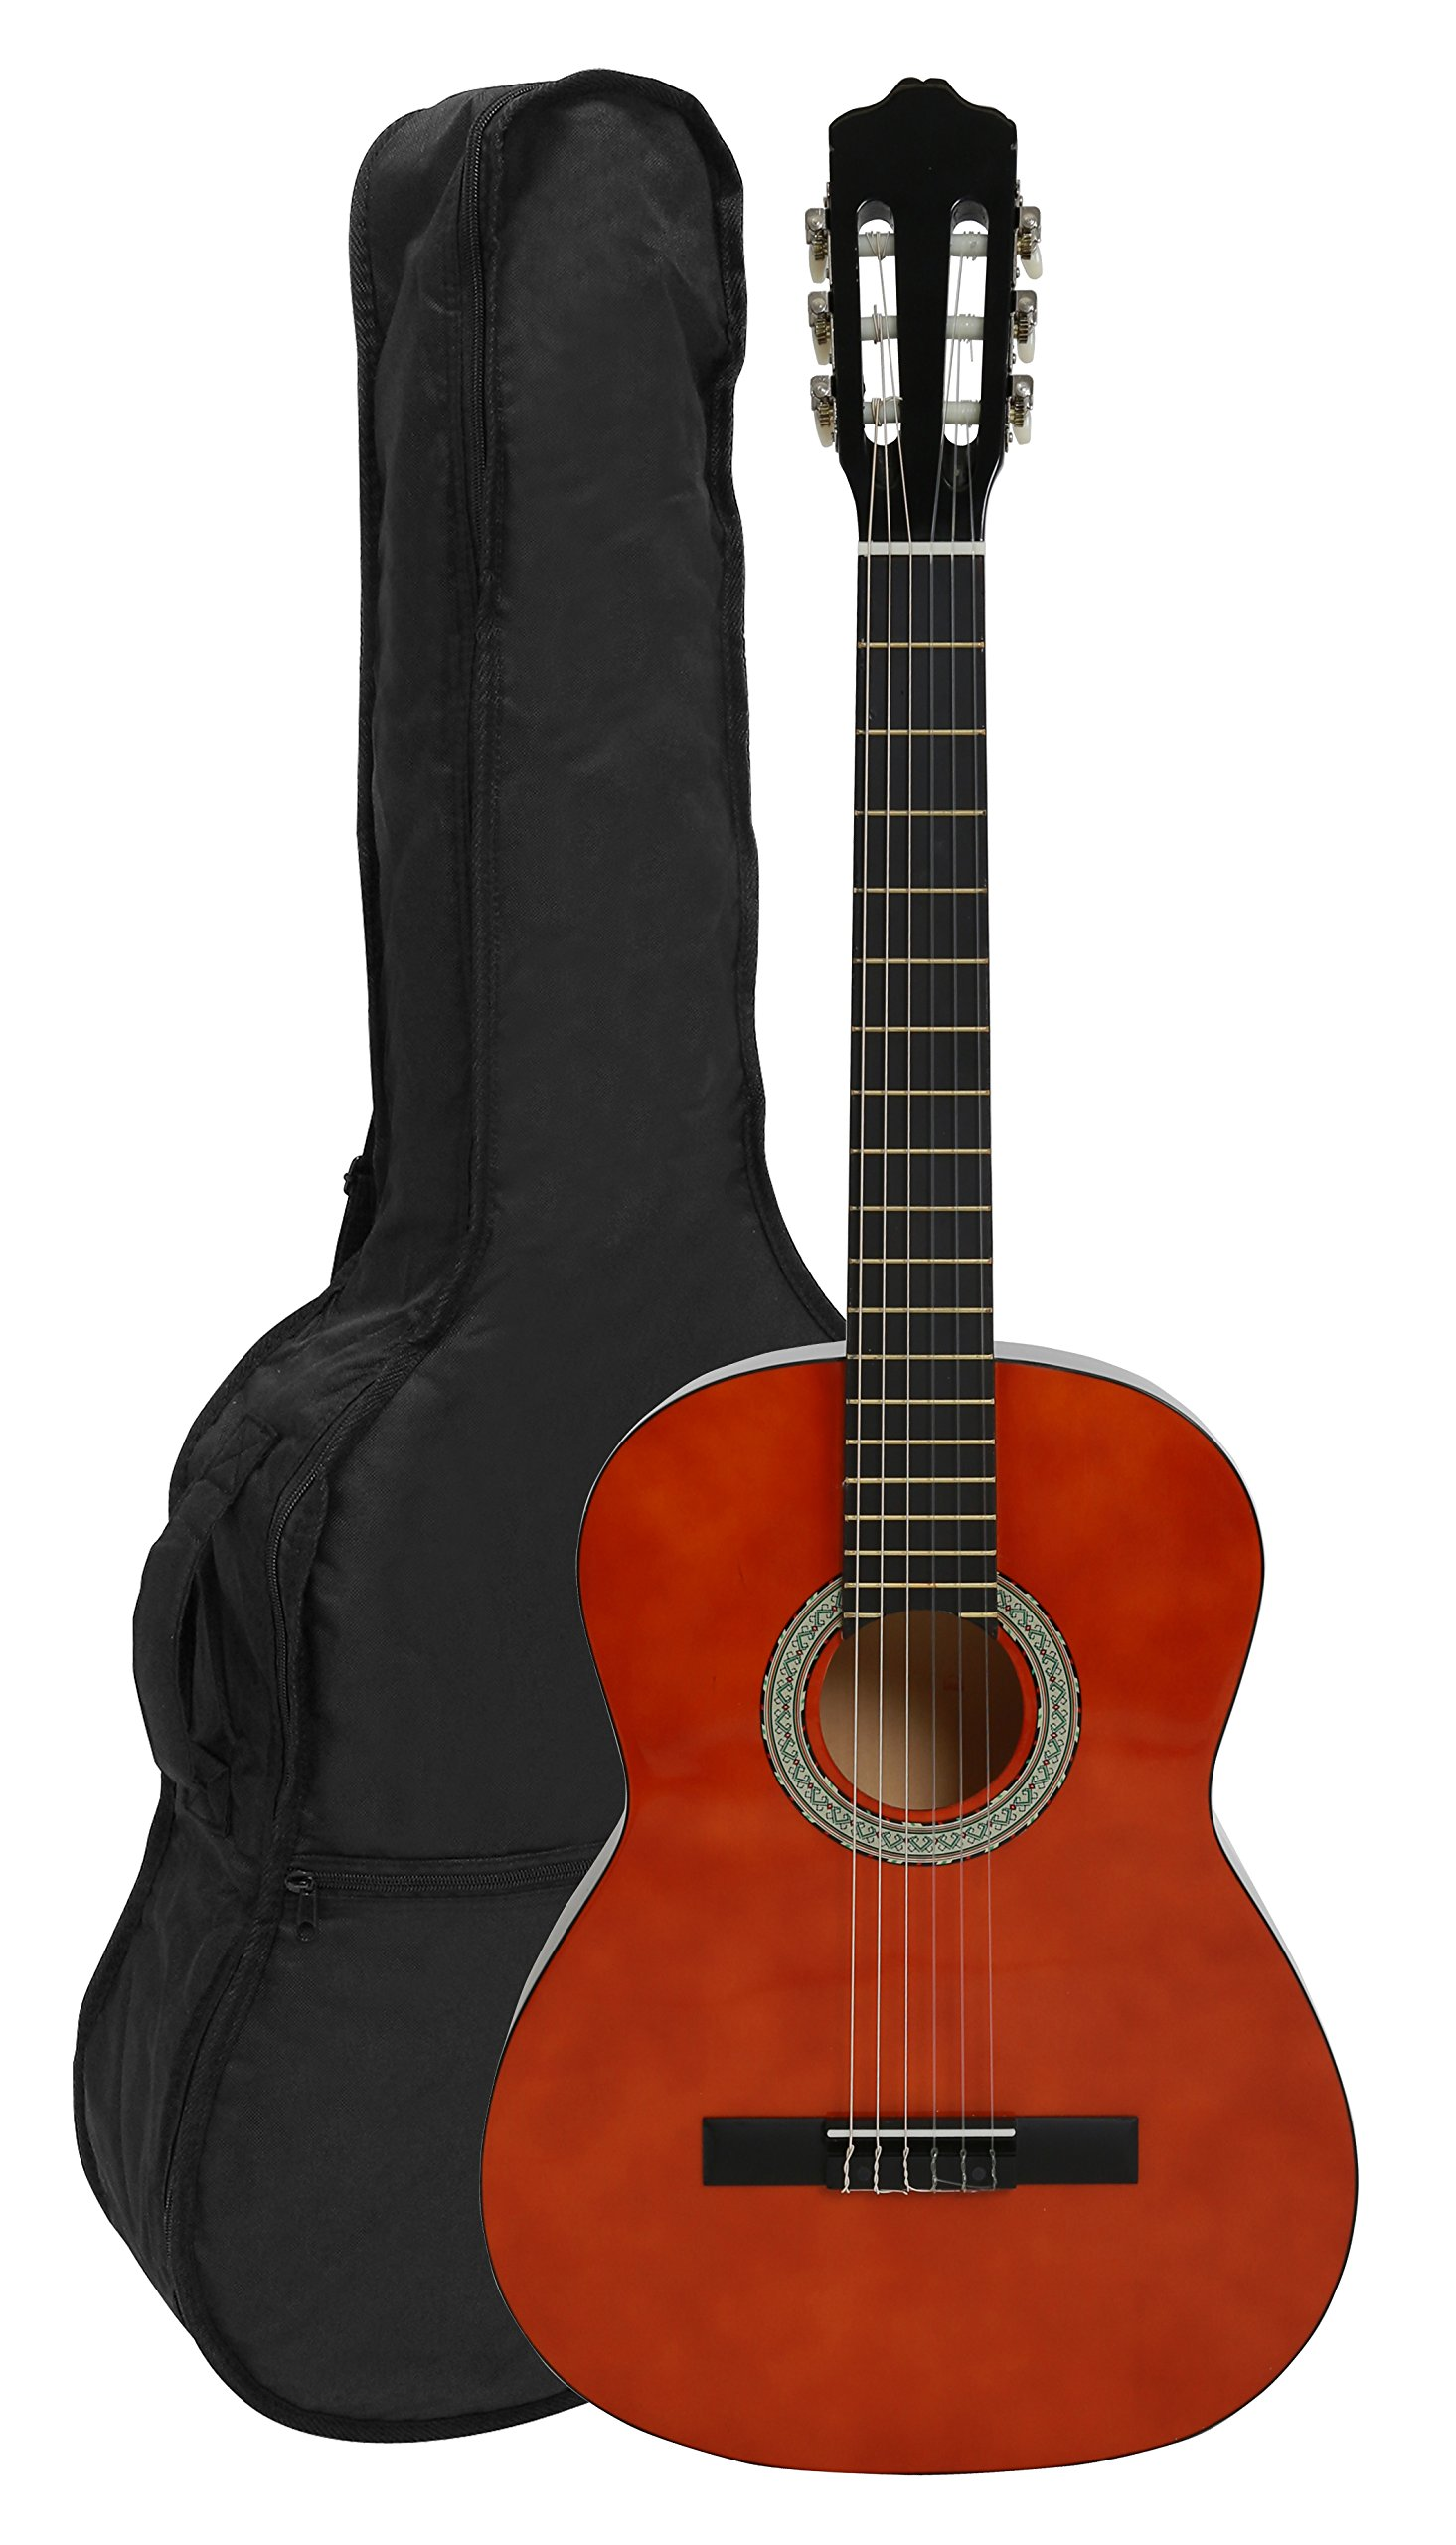 NAVARRA NV11 - Guitarra clásica 4/4 honey con bordes negro incl. funda con